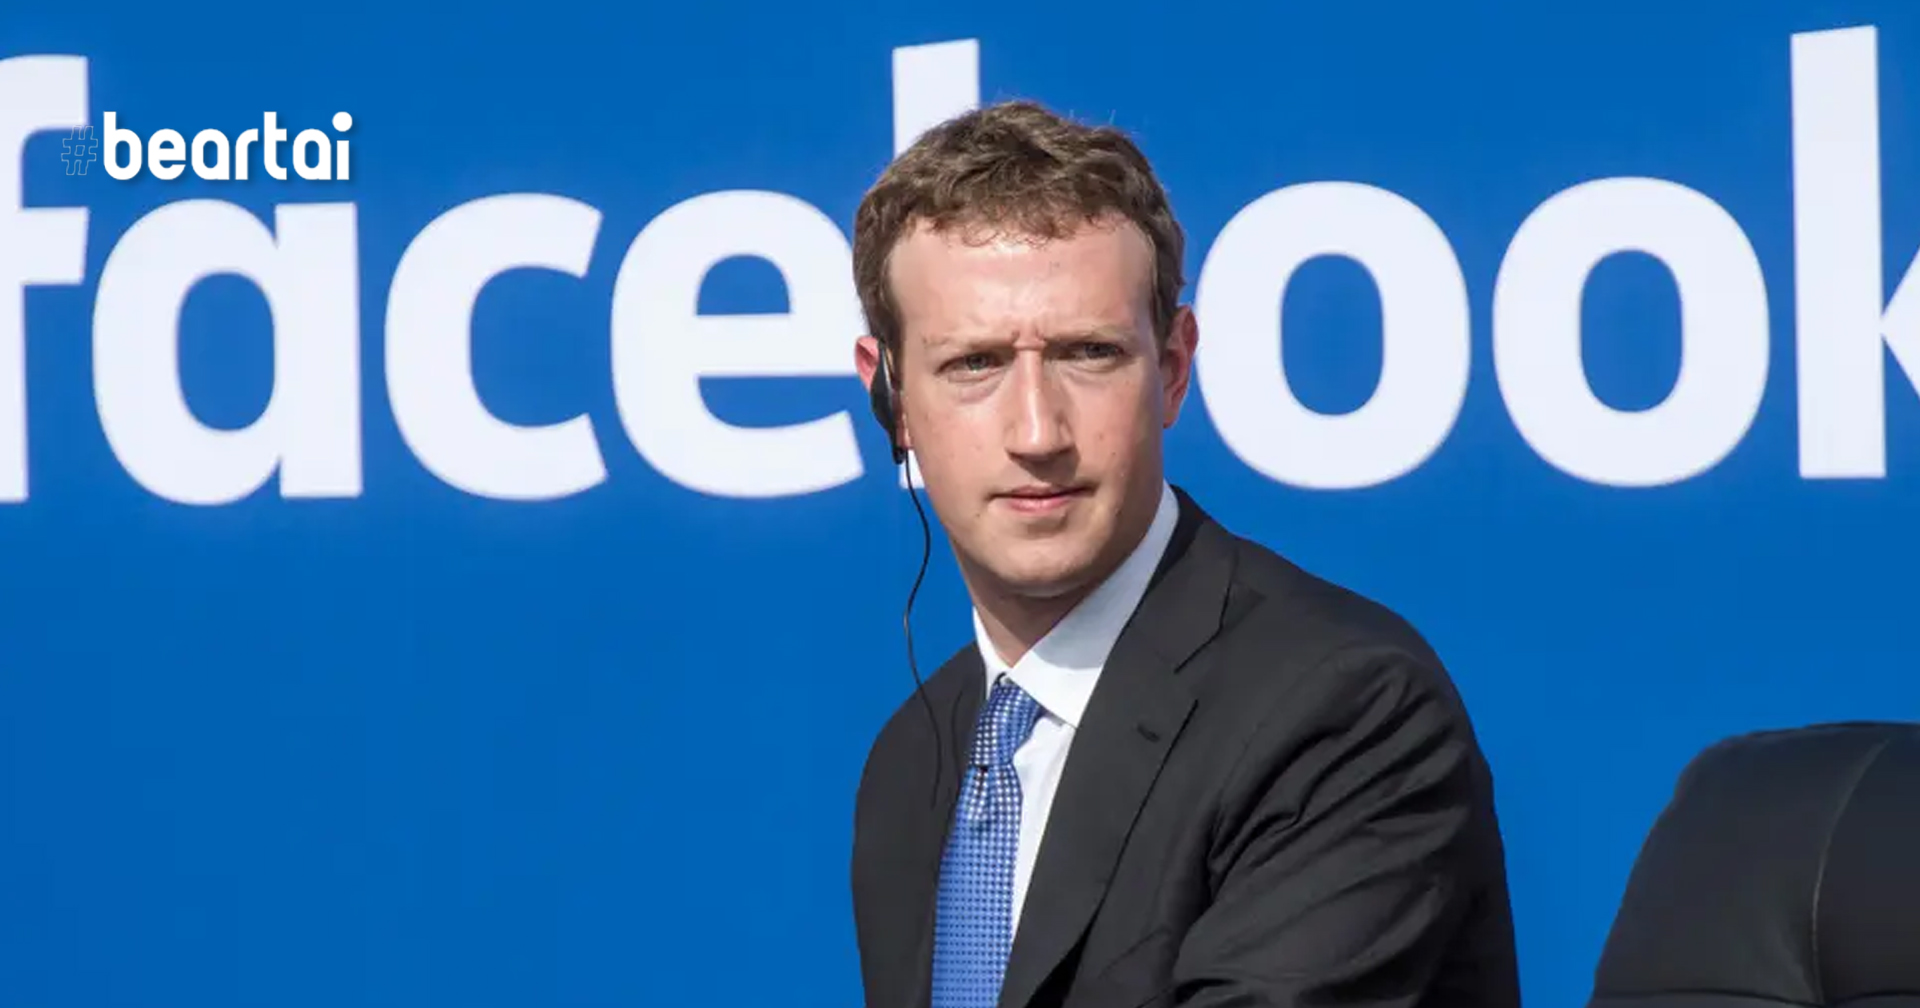 Facebook spent more on lobbying than any other Big Tech company in 2020